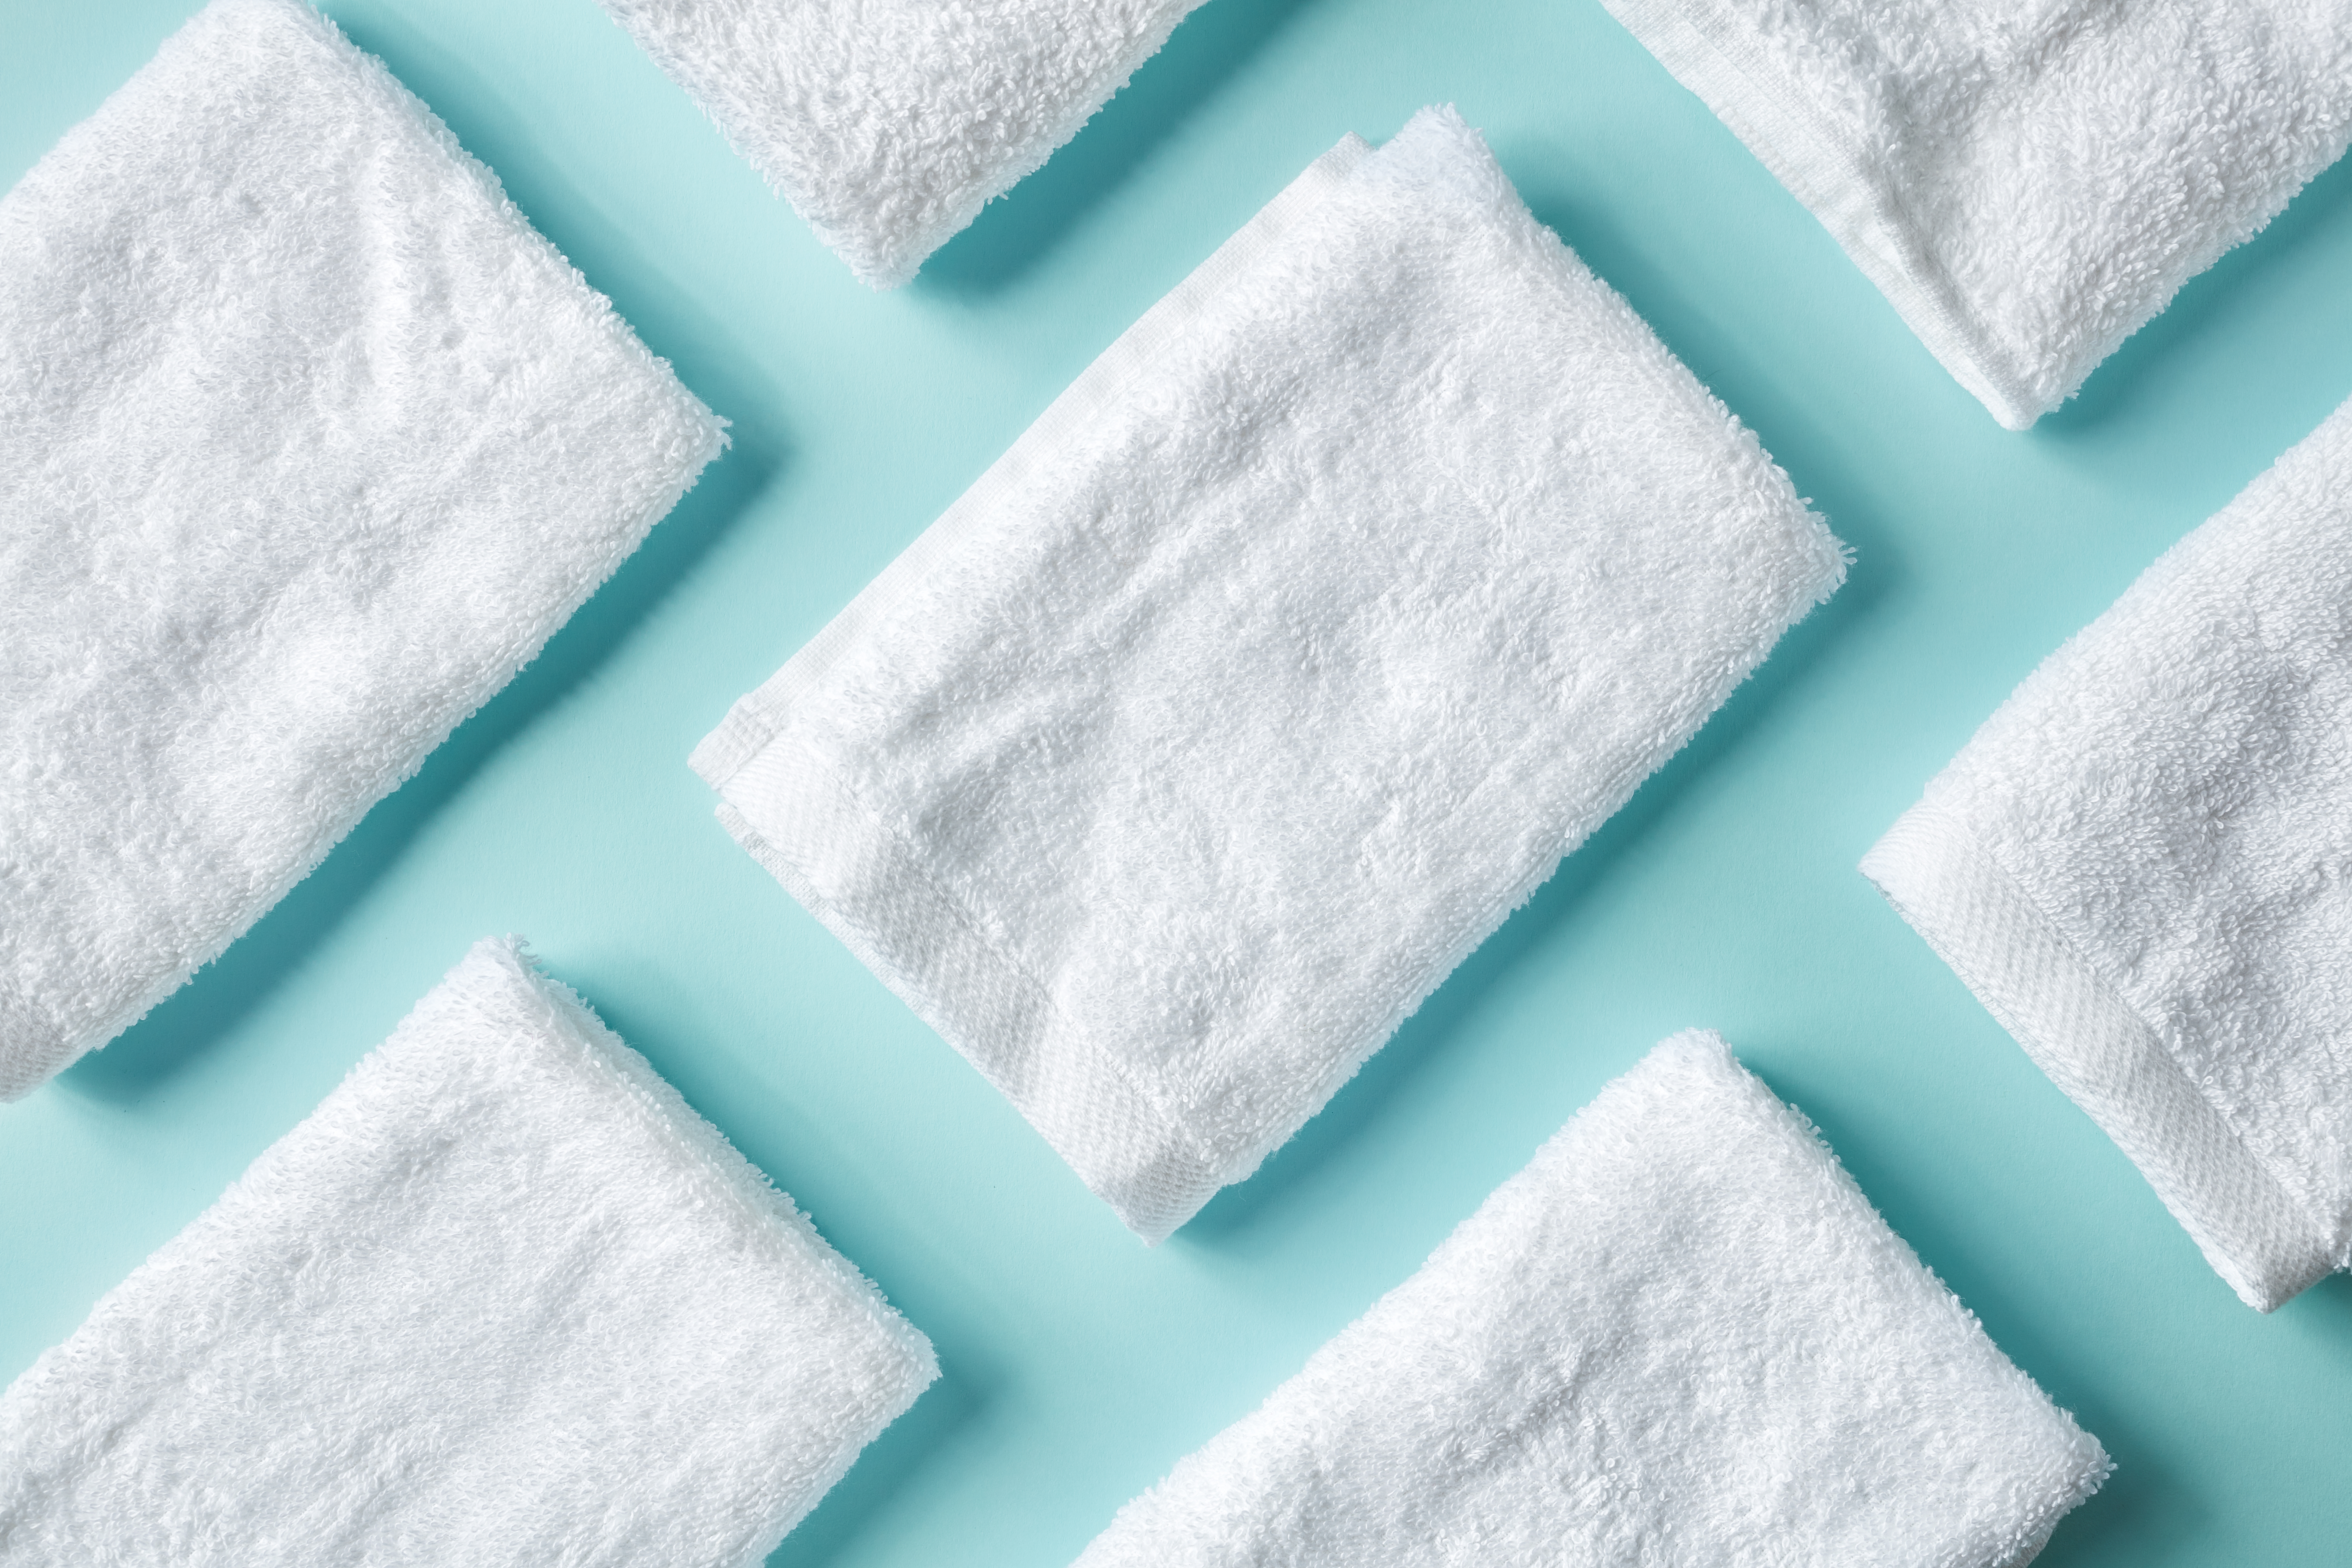 How Often Should You Use A Towel Before Washing